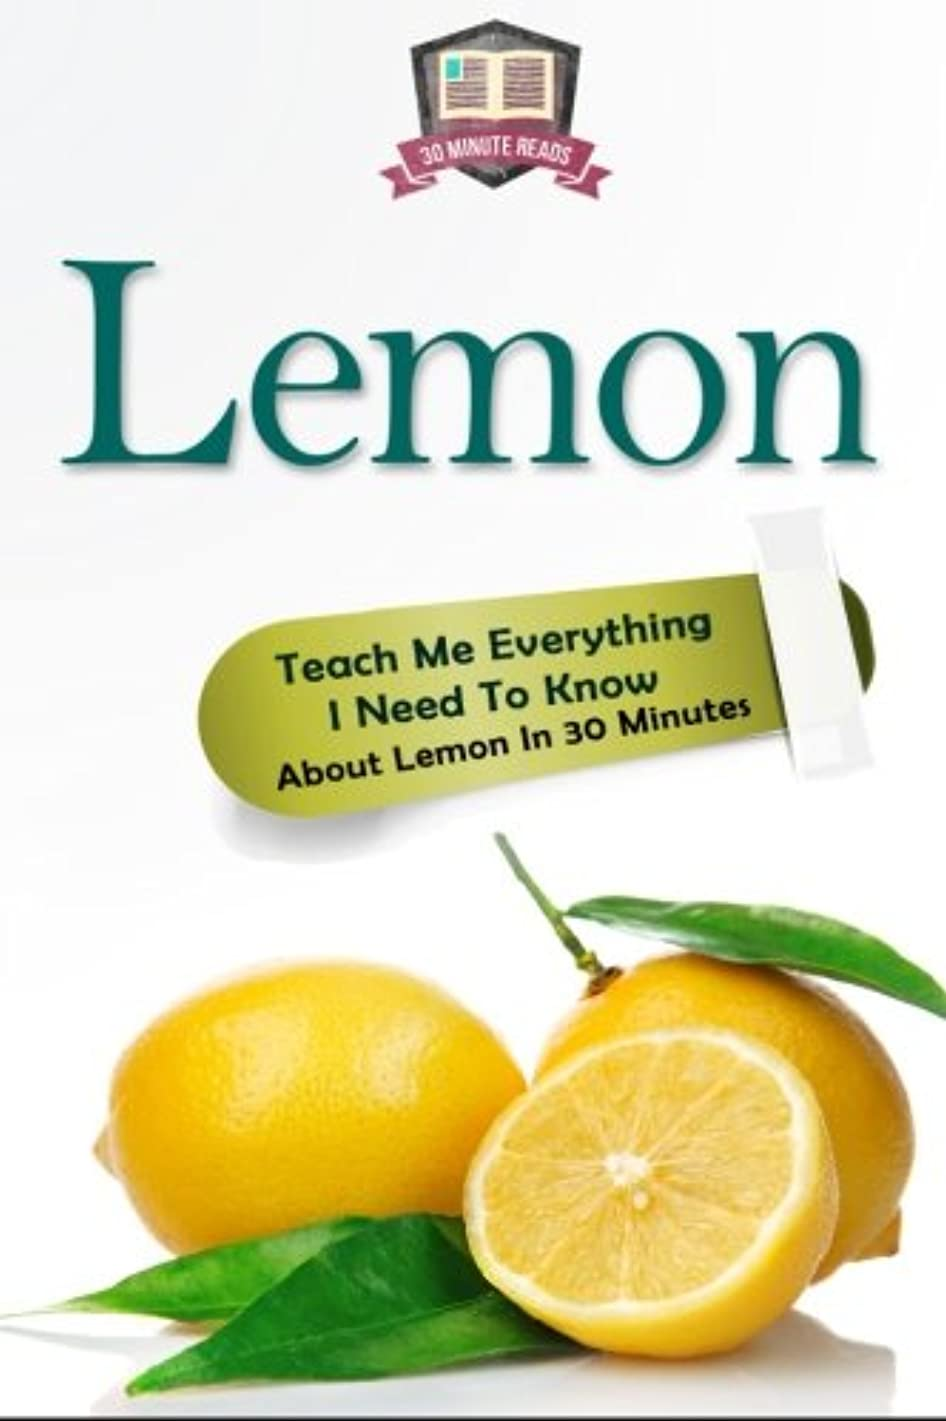 Lemon: Teach Me Everything I Need To Know About Lemon In 30 Minutes (Herbal Remedies - Superfoods - Natural Healing - Lemons - Fruit)